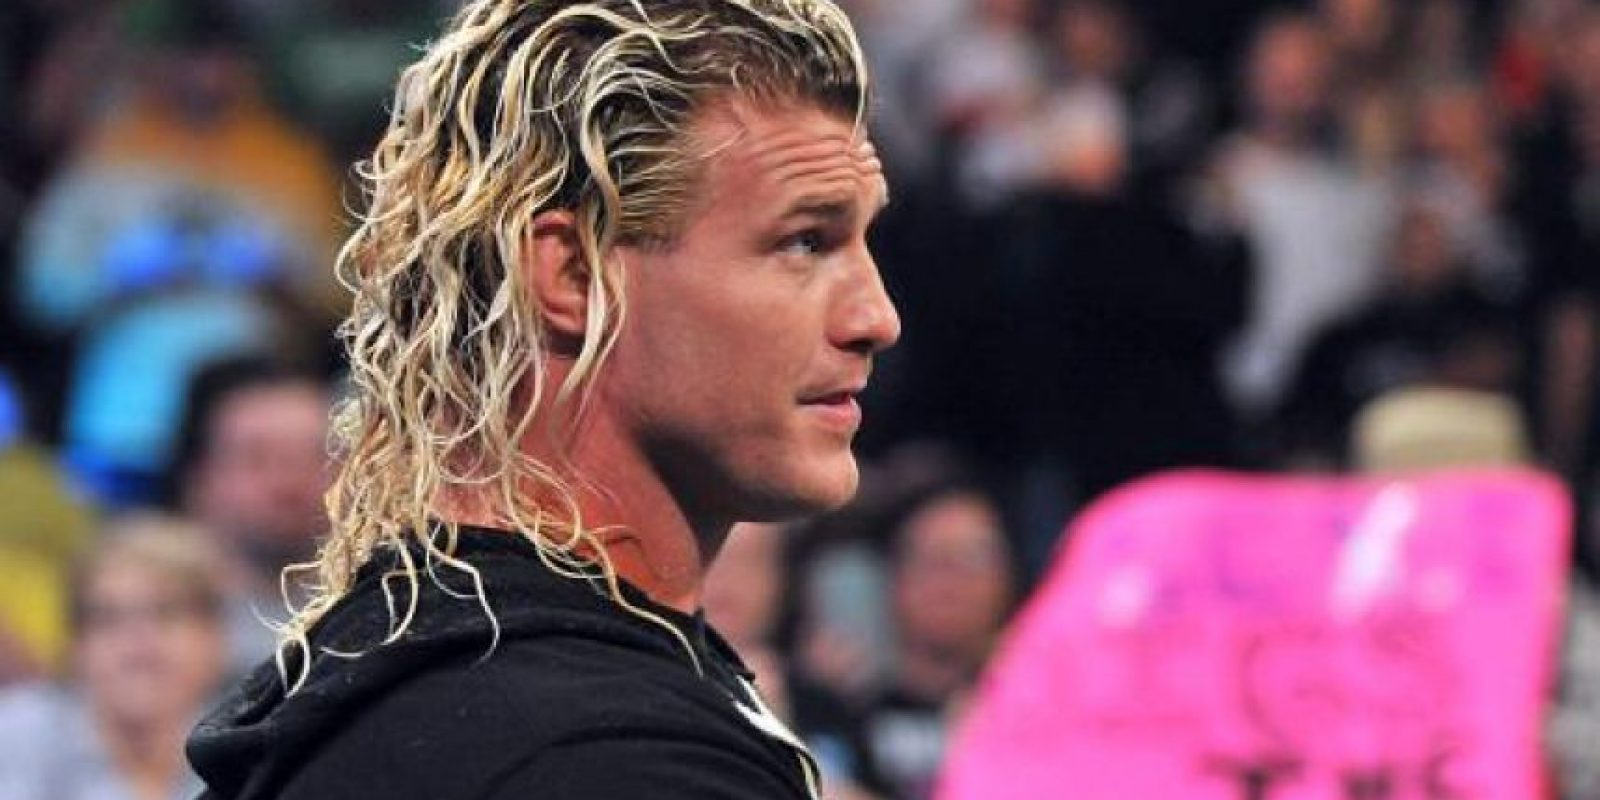 Dolph Ziggler es el actual campeón Intercontinental Foto: WWE